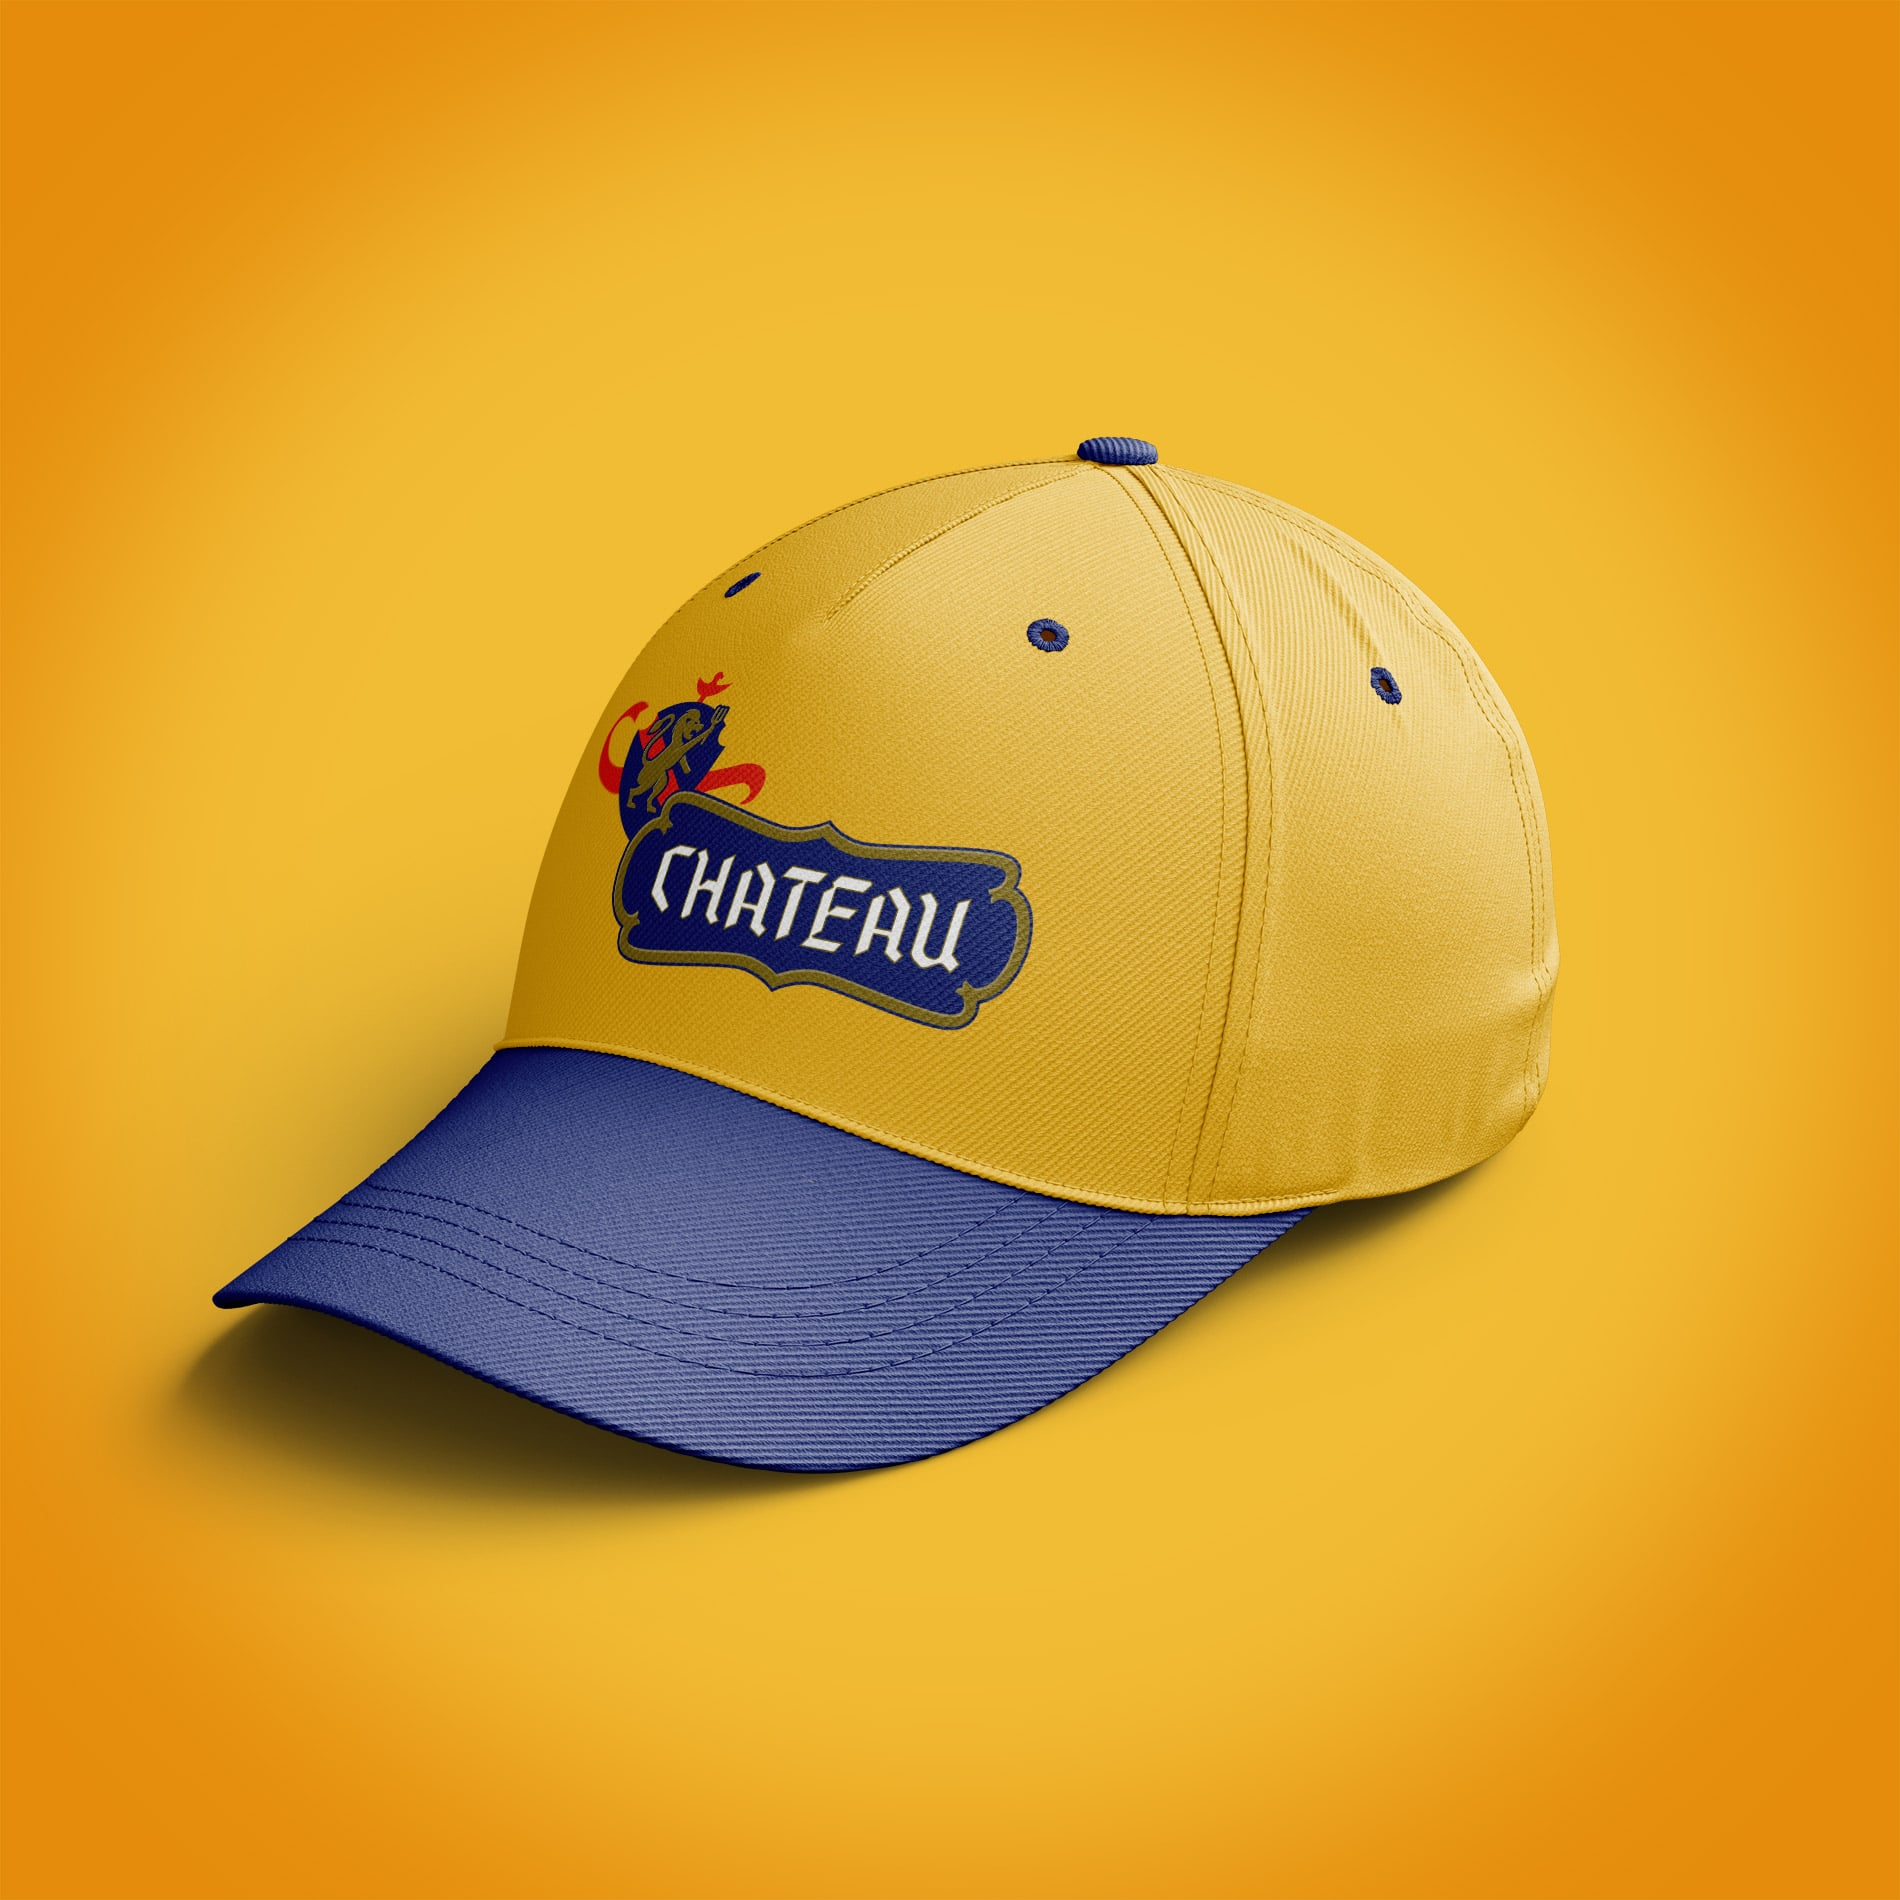 Chateau branded hat design